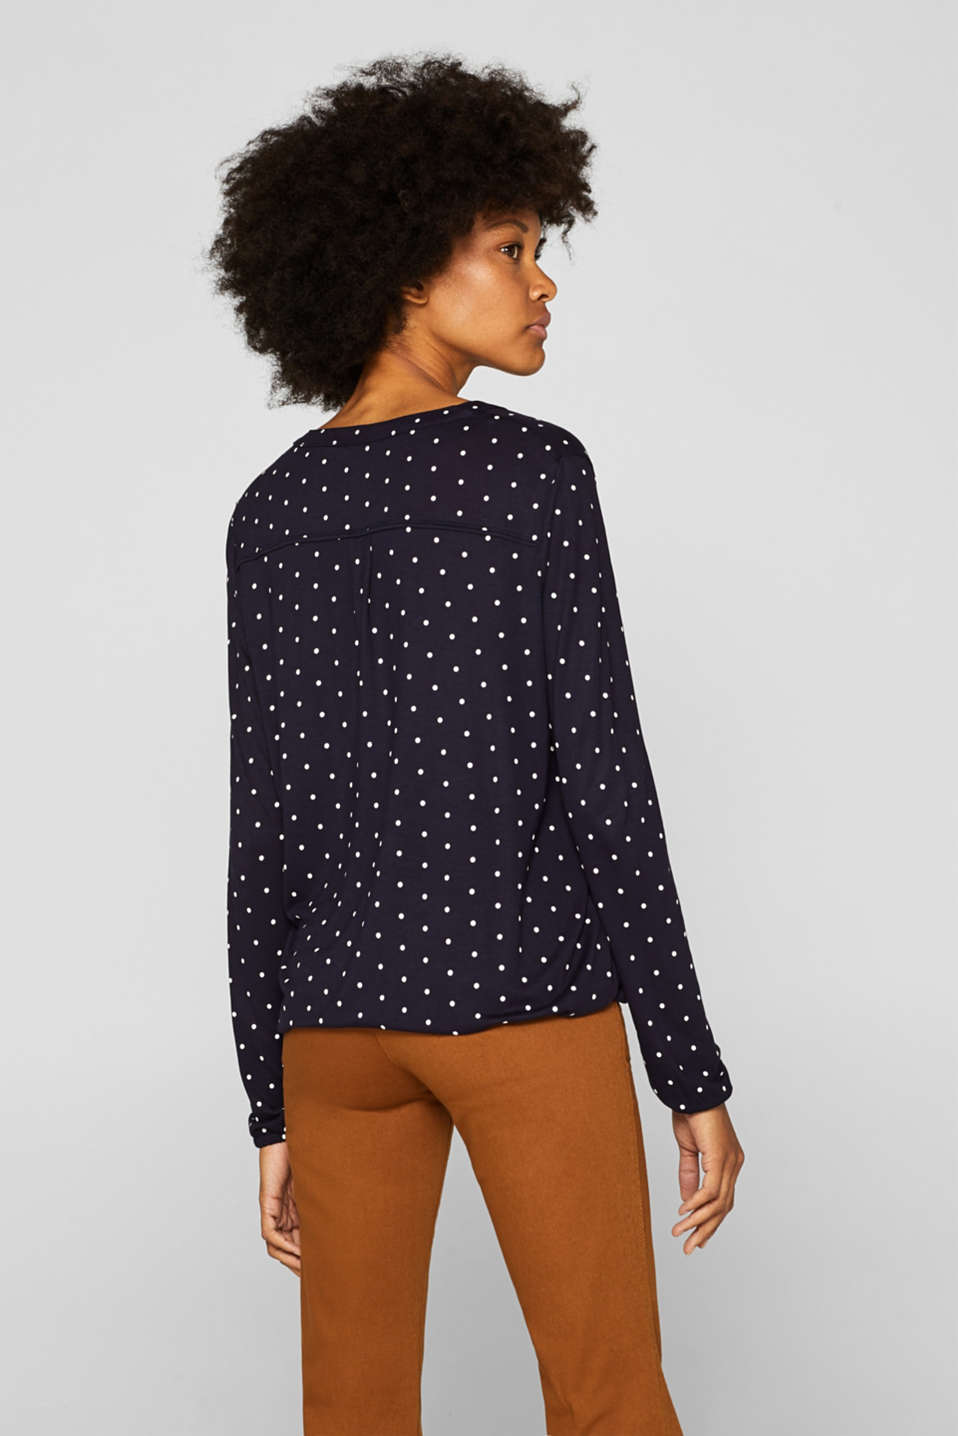 Polka dot top with cloth details, NAVY, detail image number 3